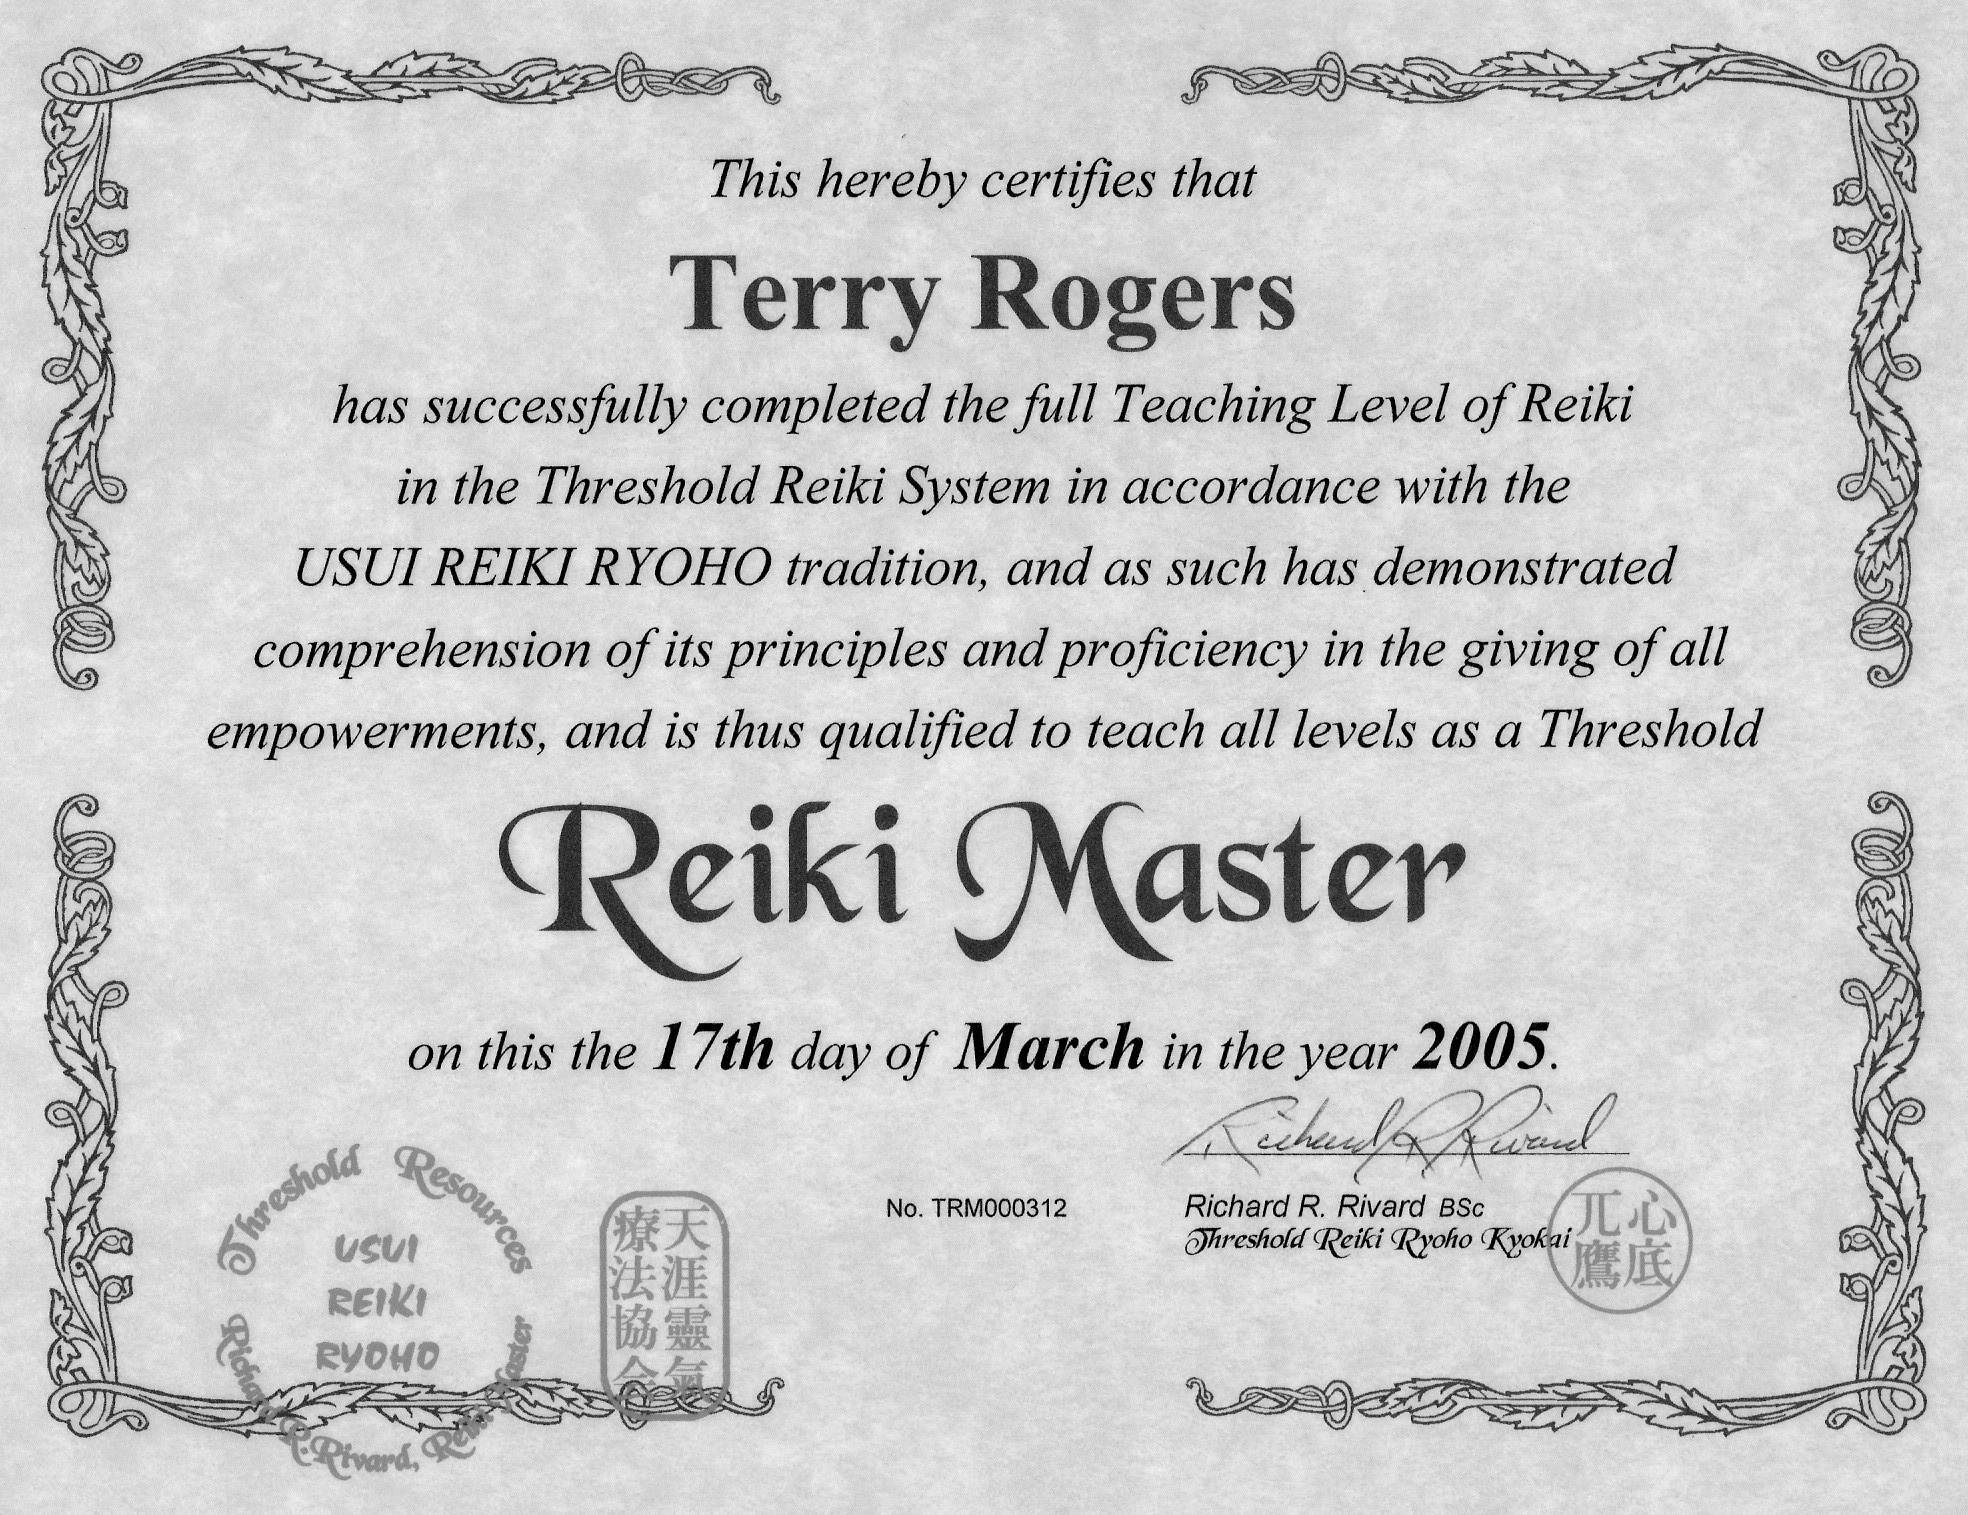 My reiki certificates i am very pleased to present my certification as master teacher shihan in the threshold system of usui reiki ryoho from rick rivard received after 1betcityfo Images